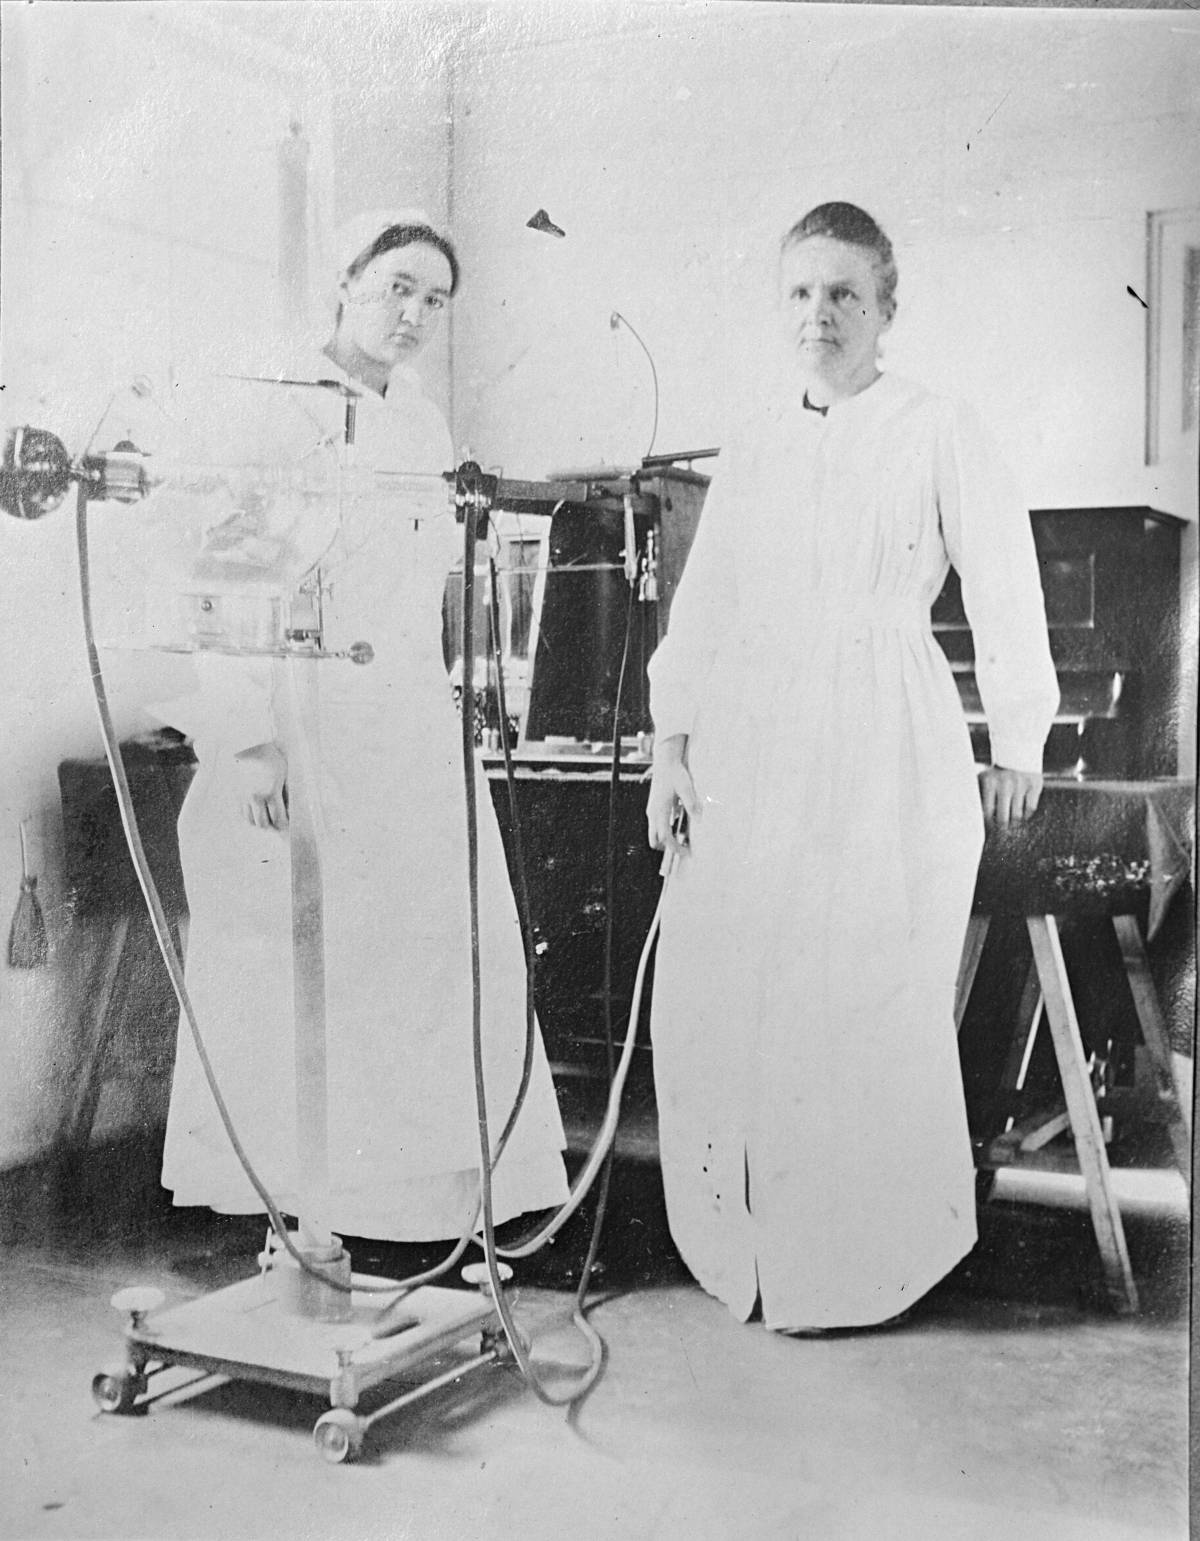 Marie Curie together with her daughter Irène in a field hospital during the First World War